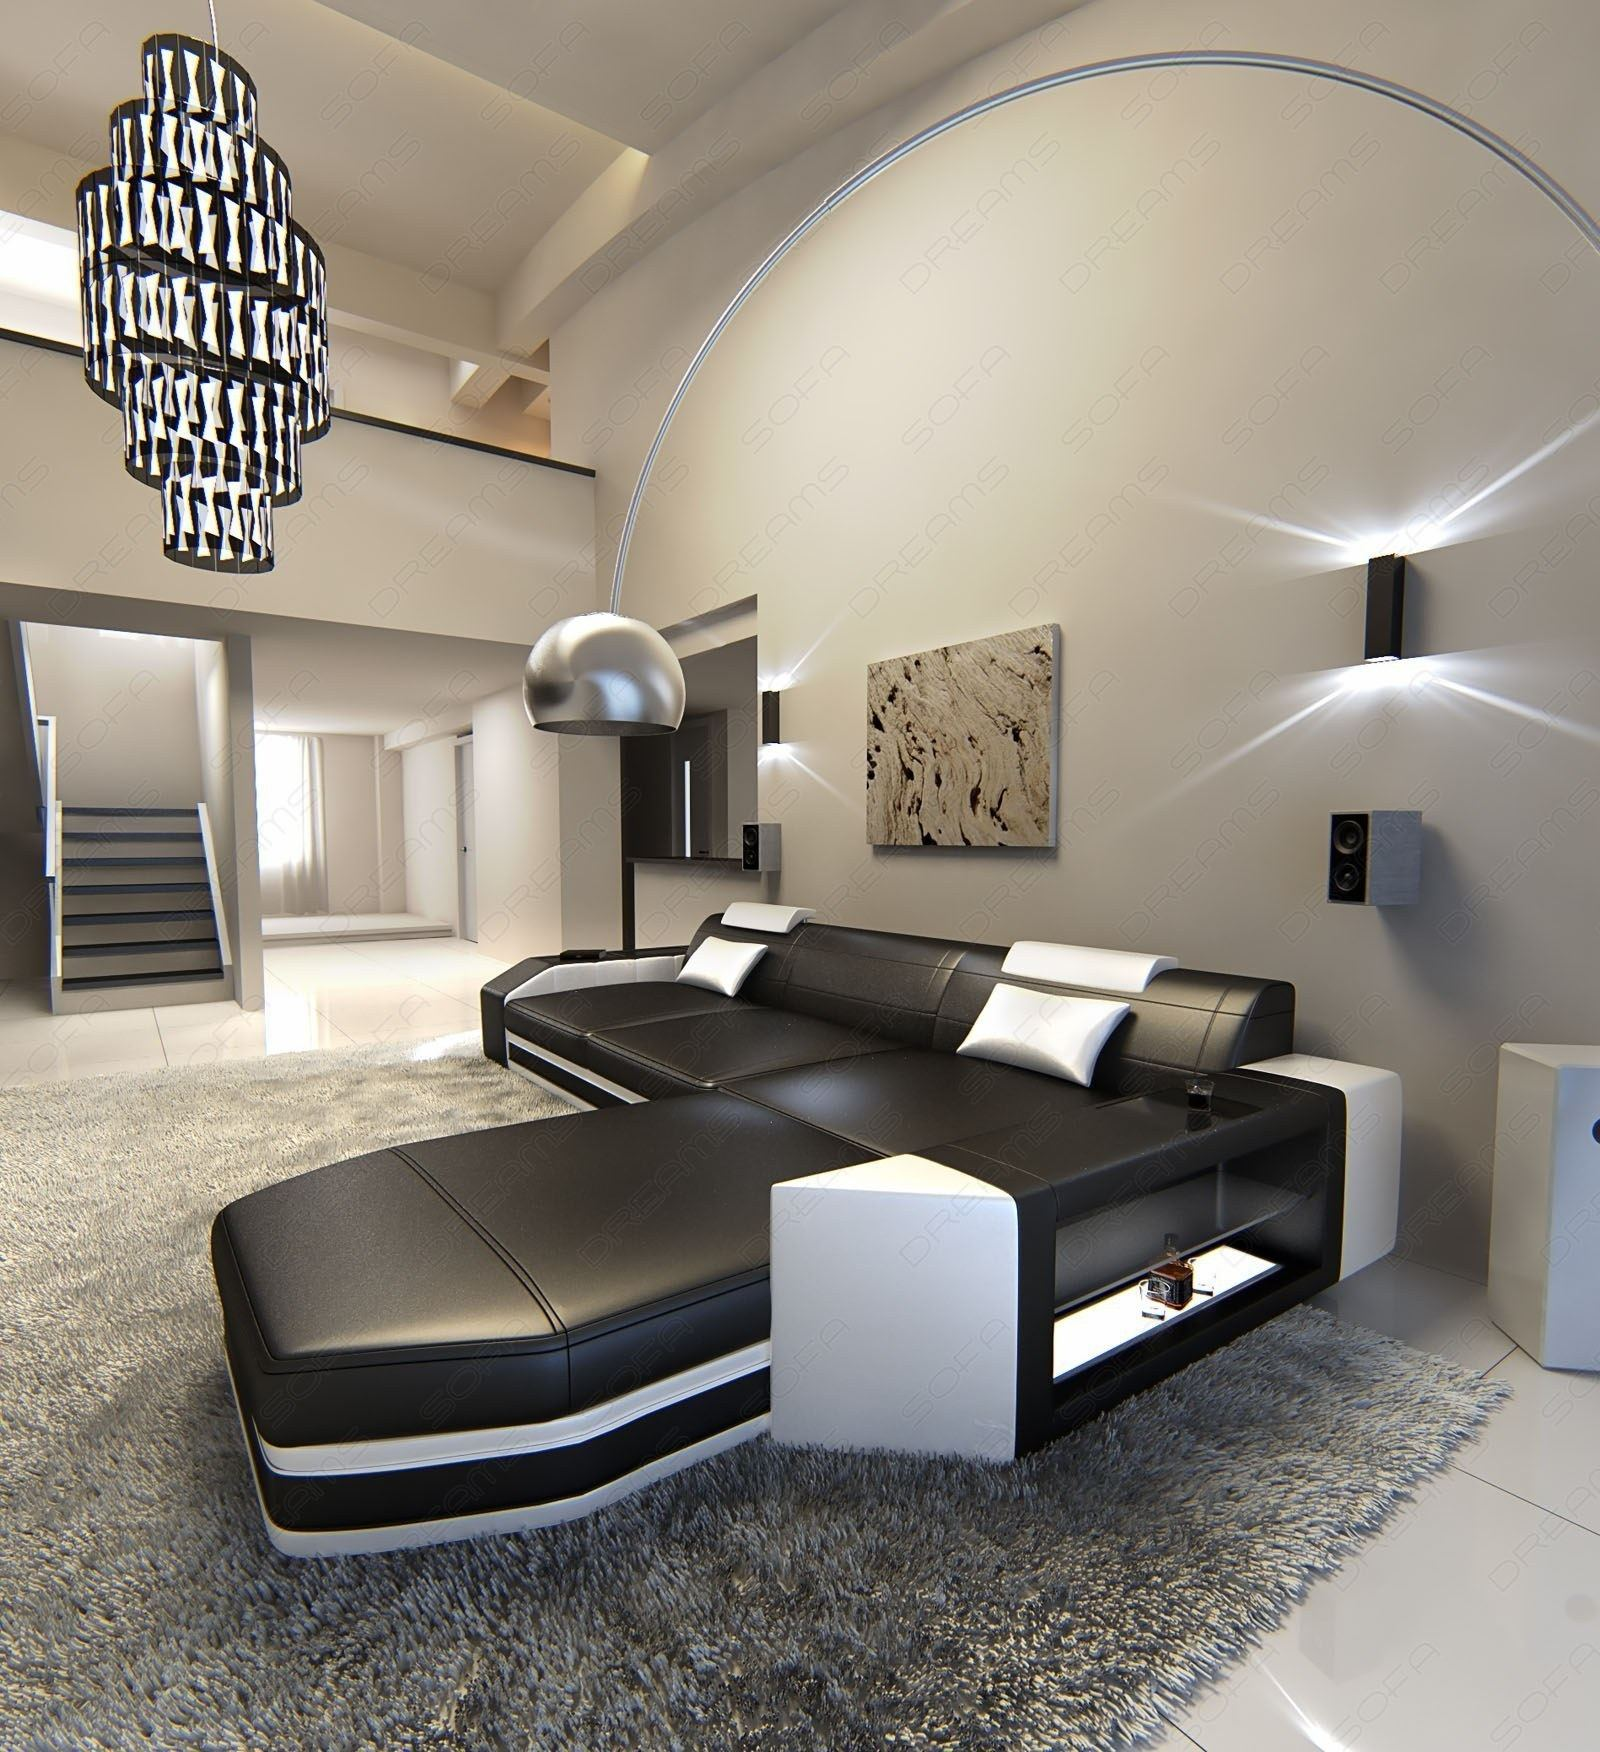 Riesensofa  Modern L-Shaped Sofa PRATO with LED Lights Leathersofa black white ...